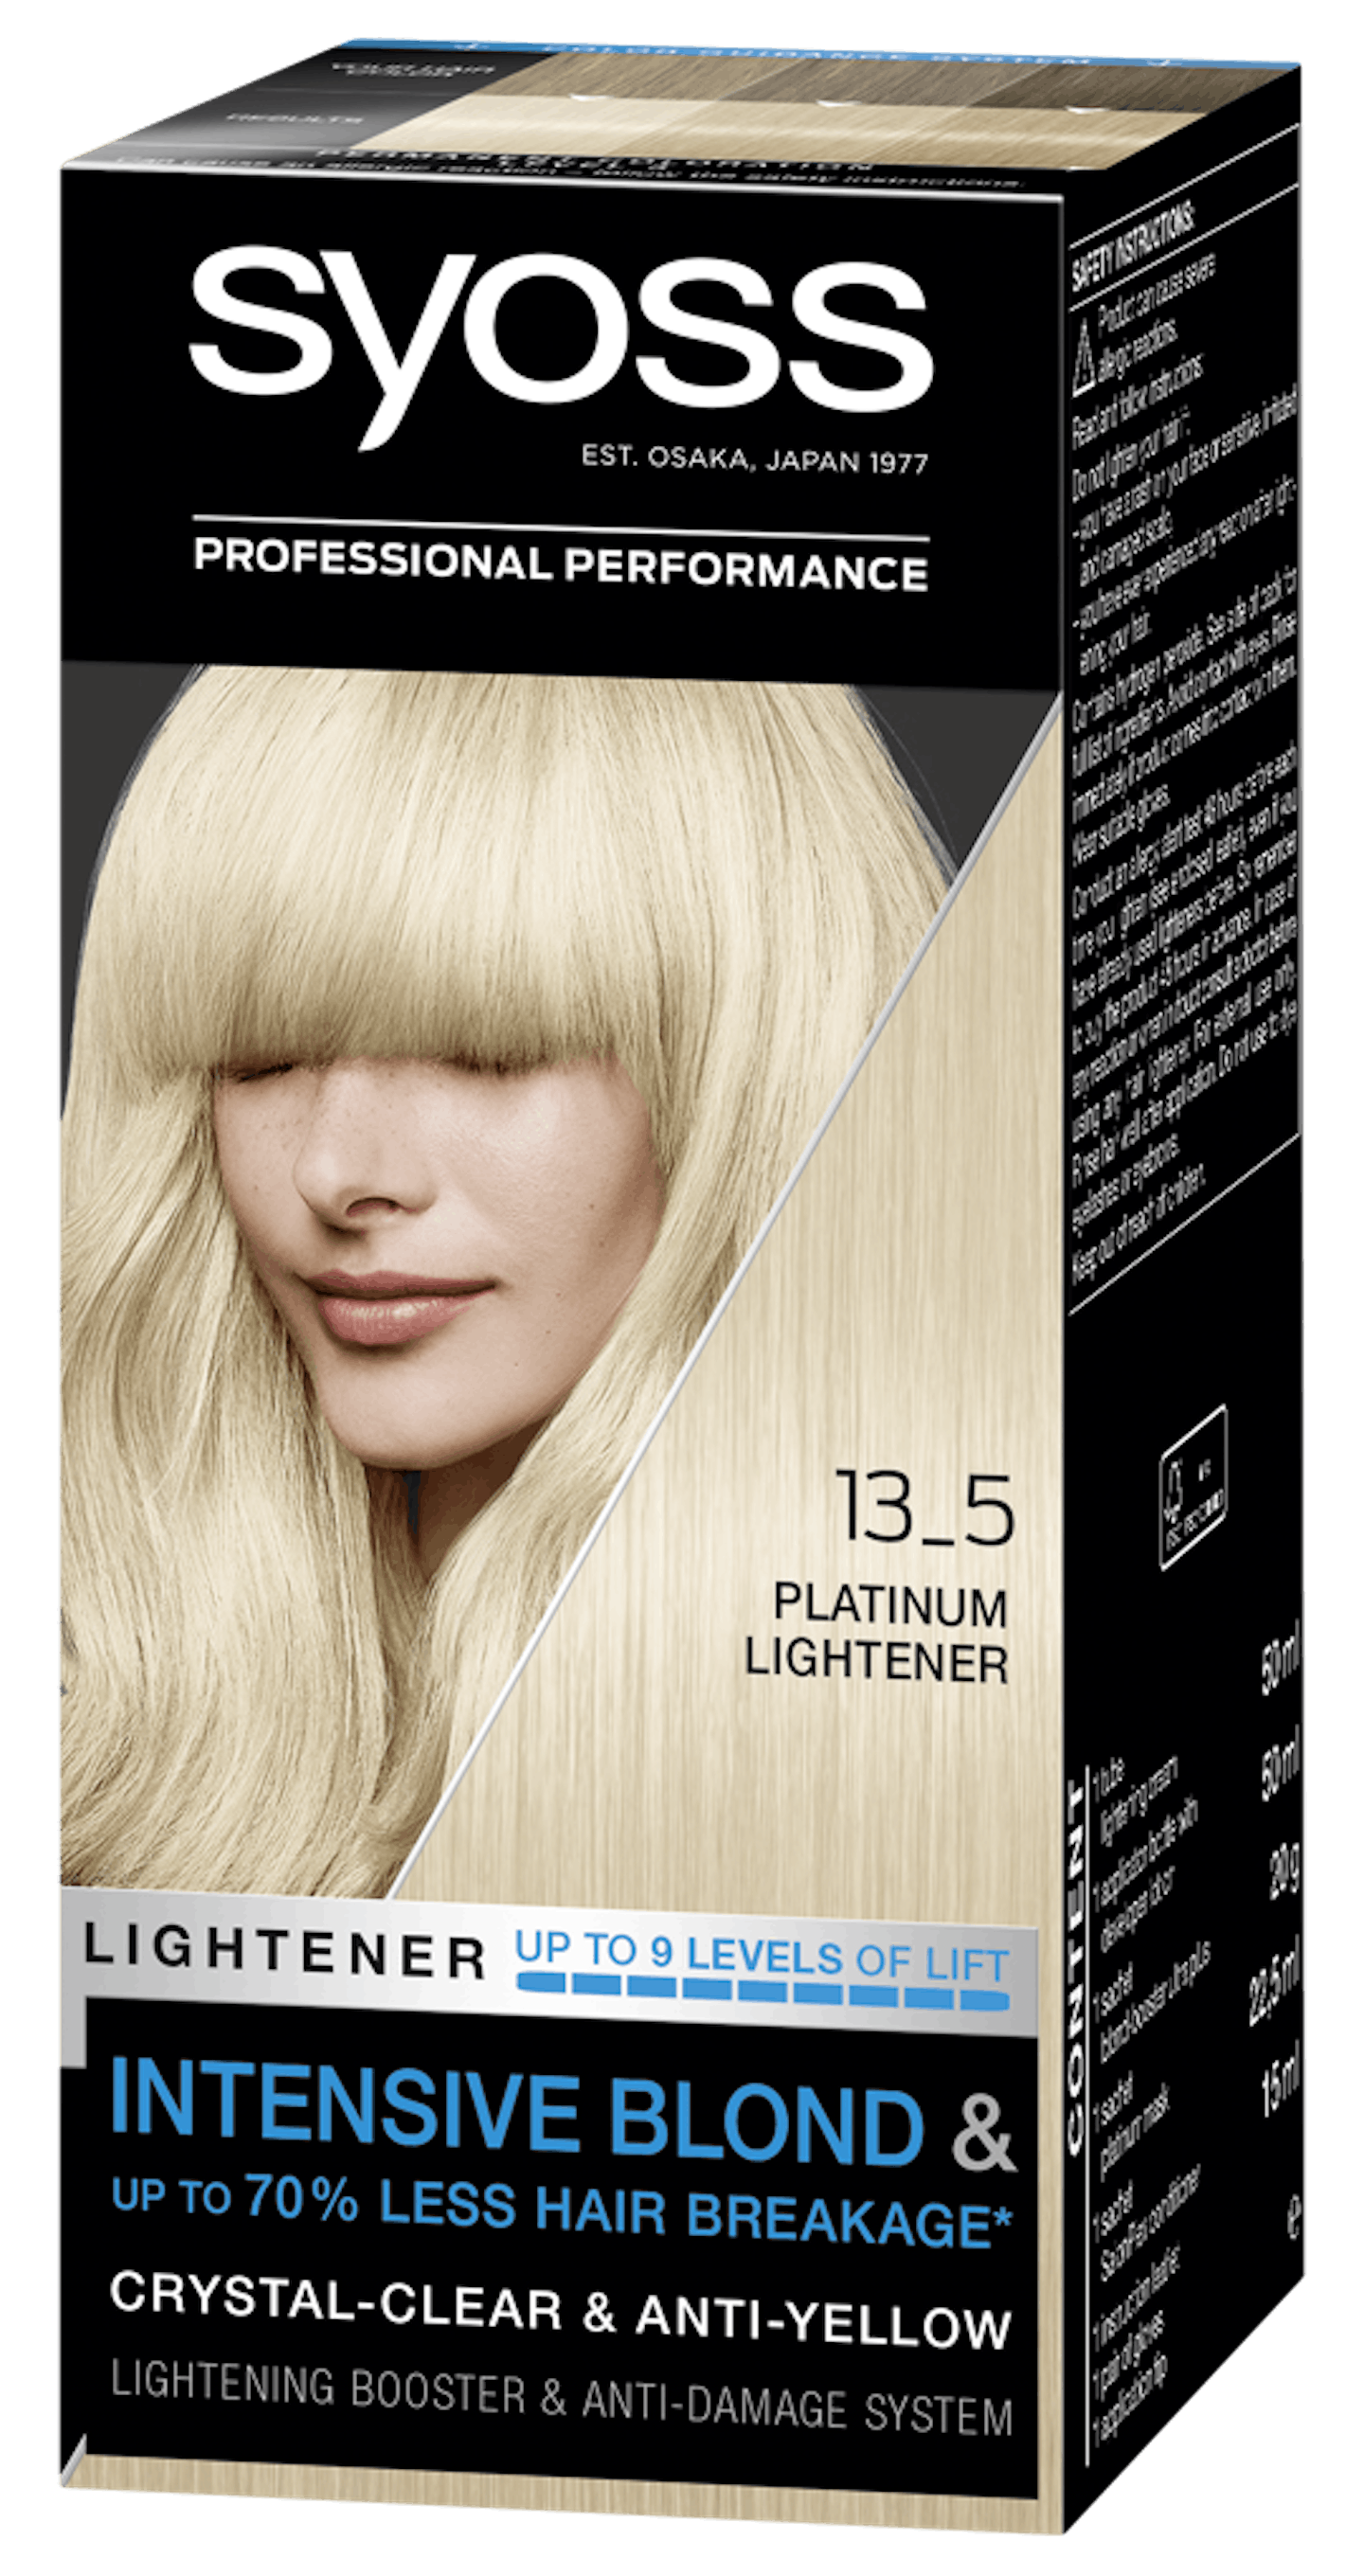 Syoss Permanent Coloration 13_5 Platinum Lightener